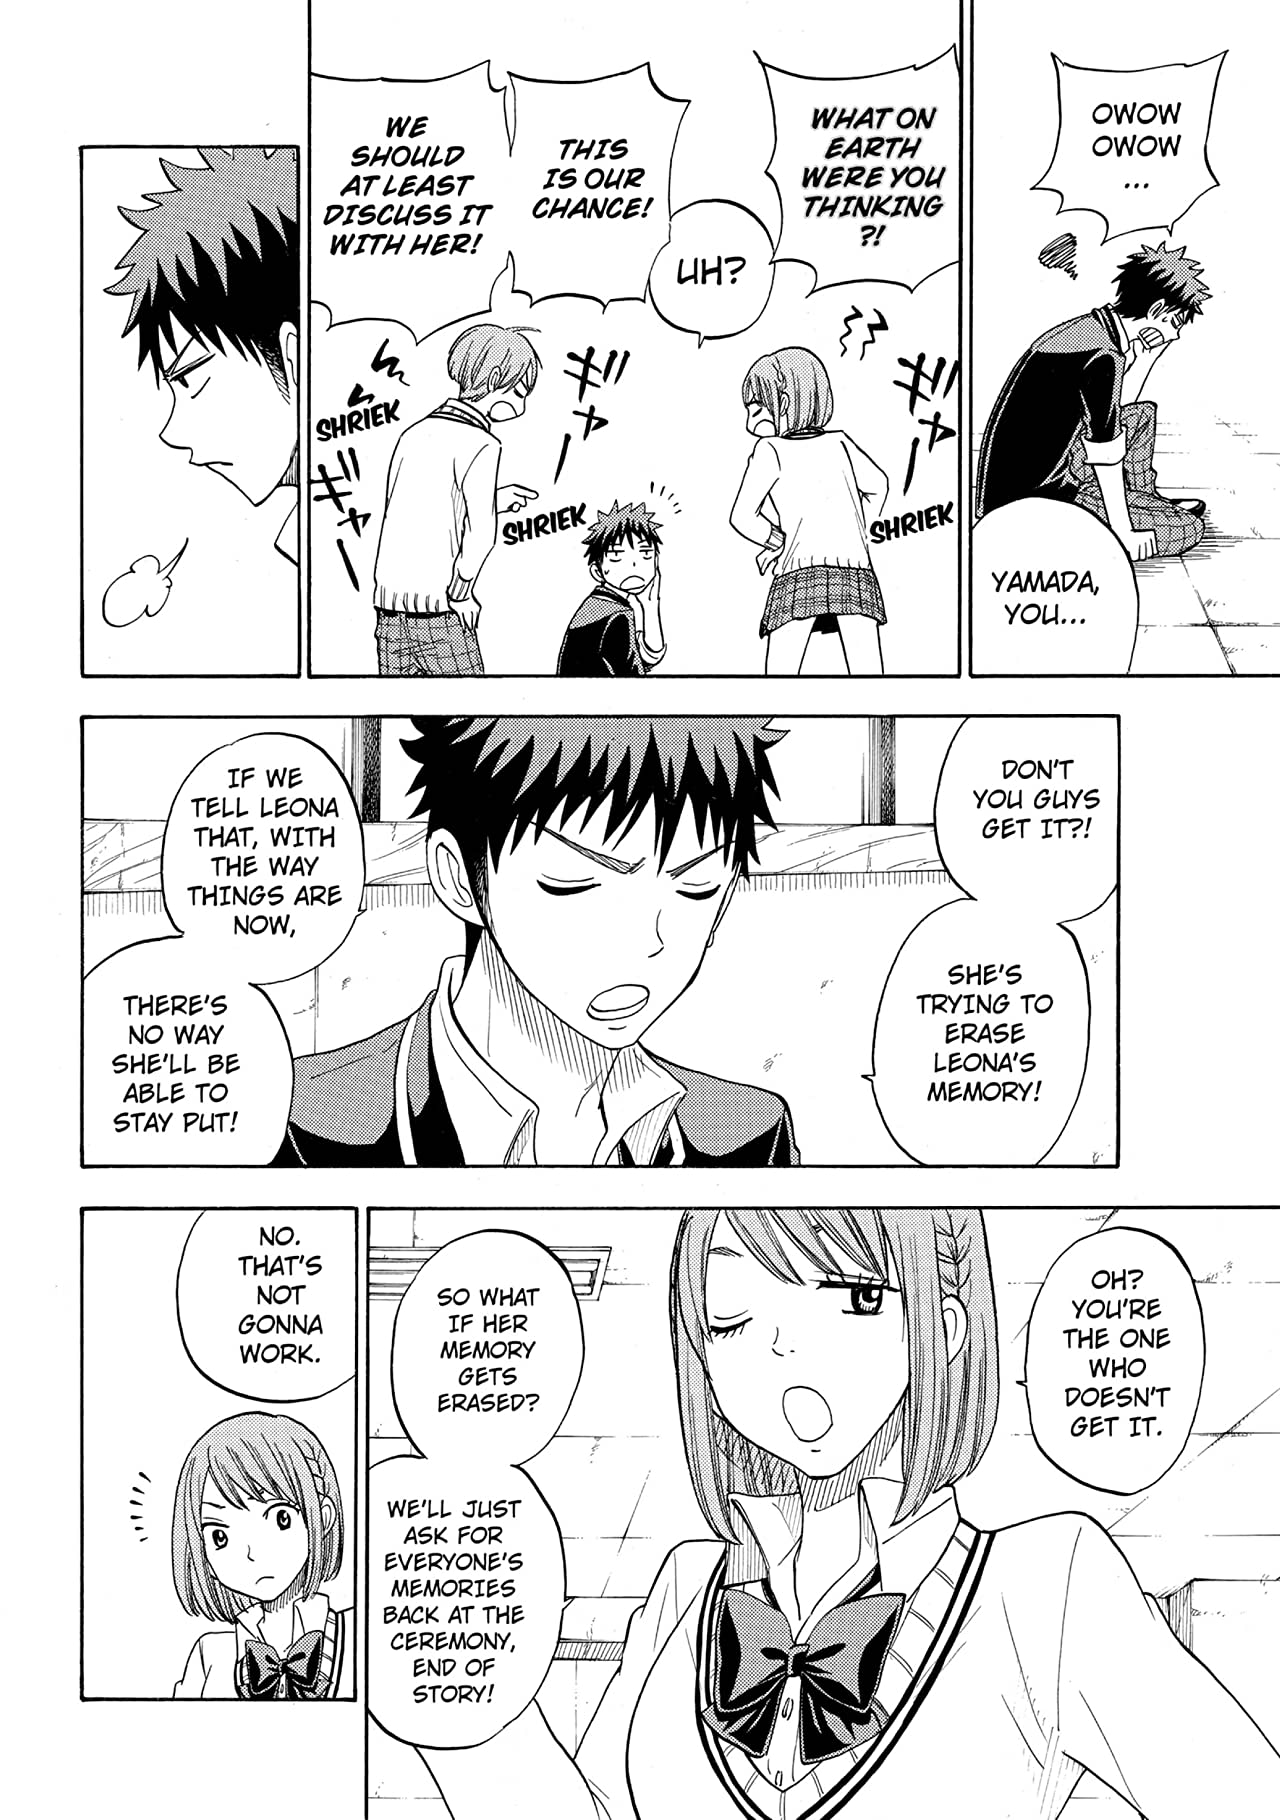 Yamada-kun and the Seven Witches #83